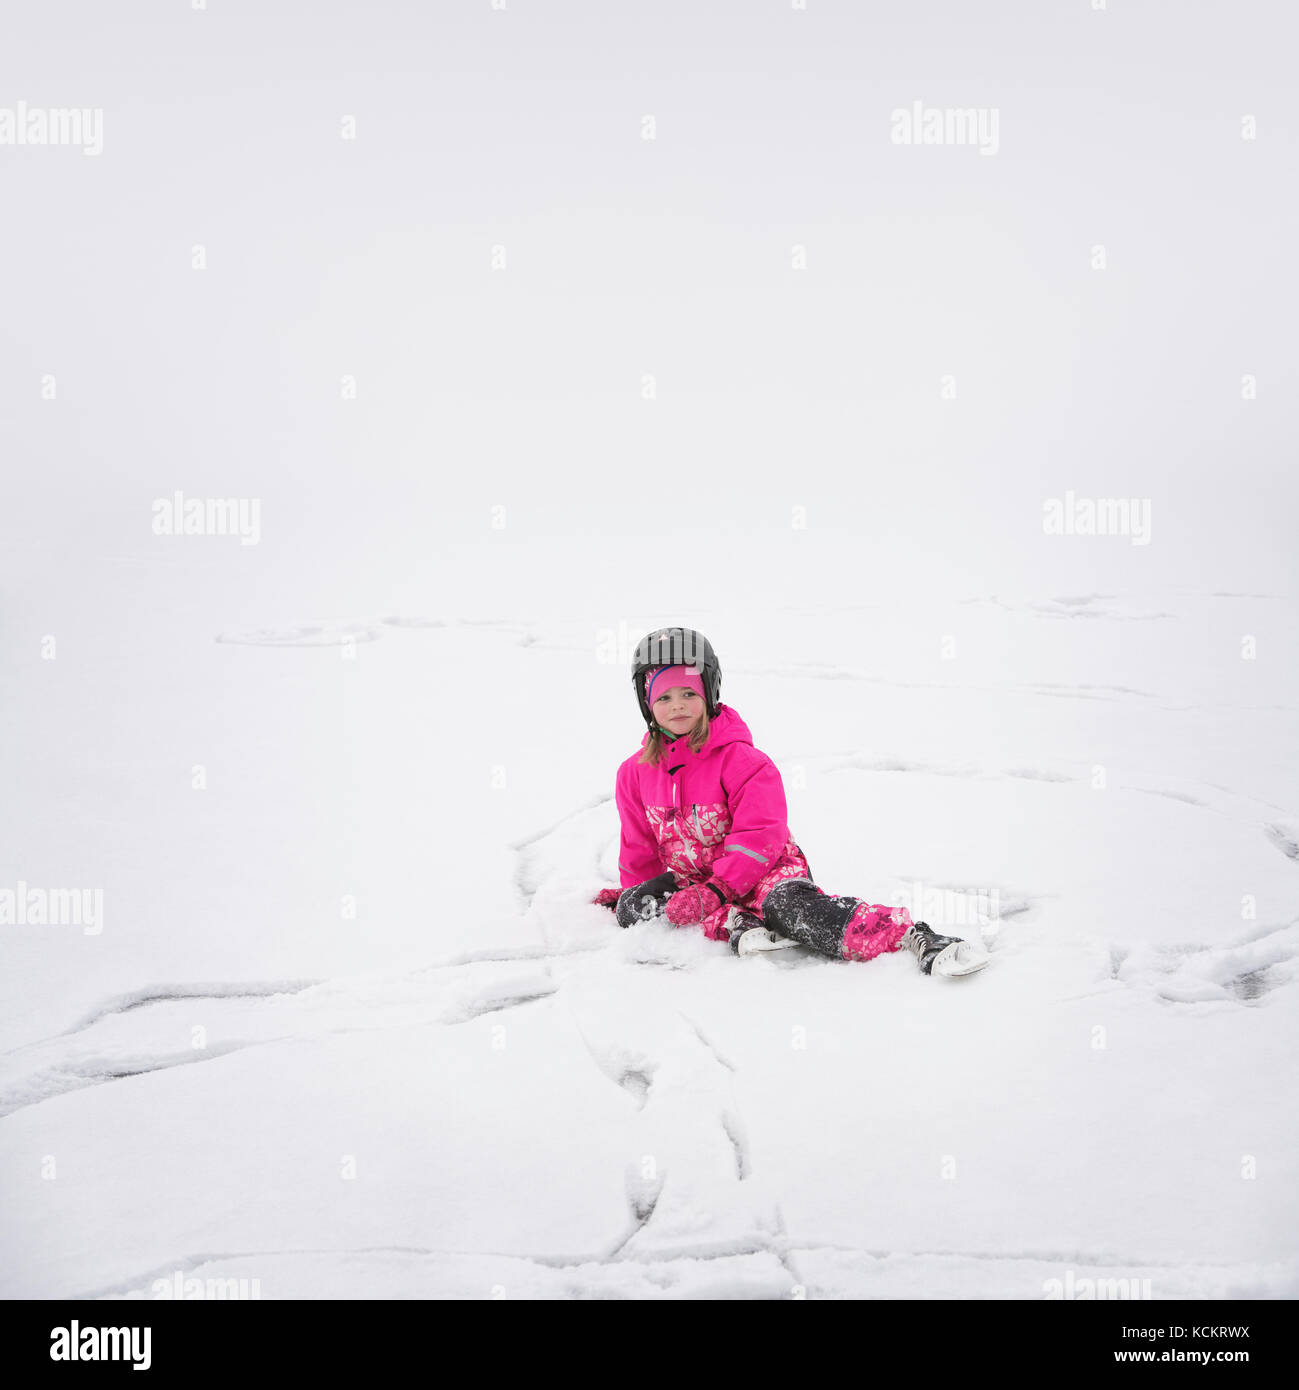 Young ice skating girl with helmet sitting in the snow on the ice after a fall - Stock Image